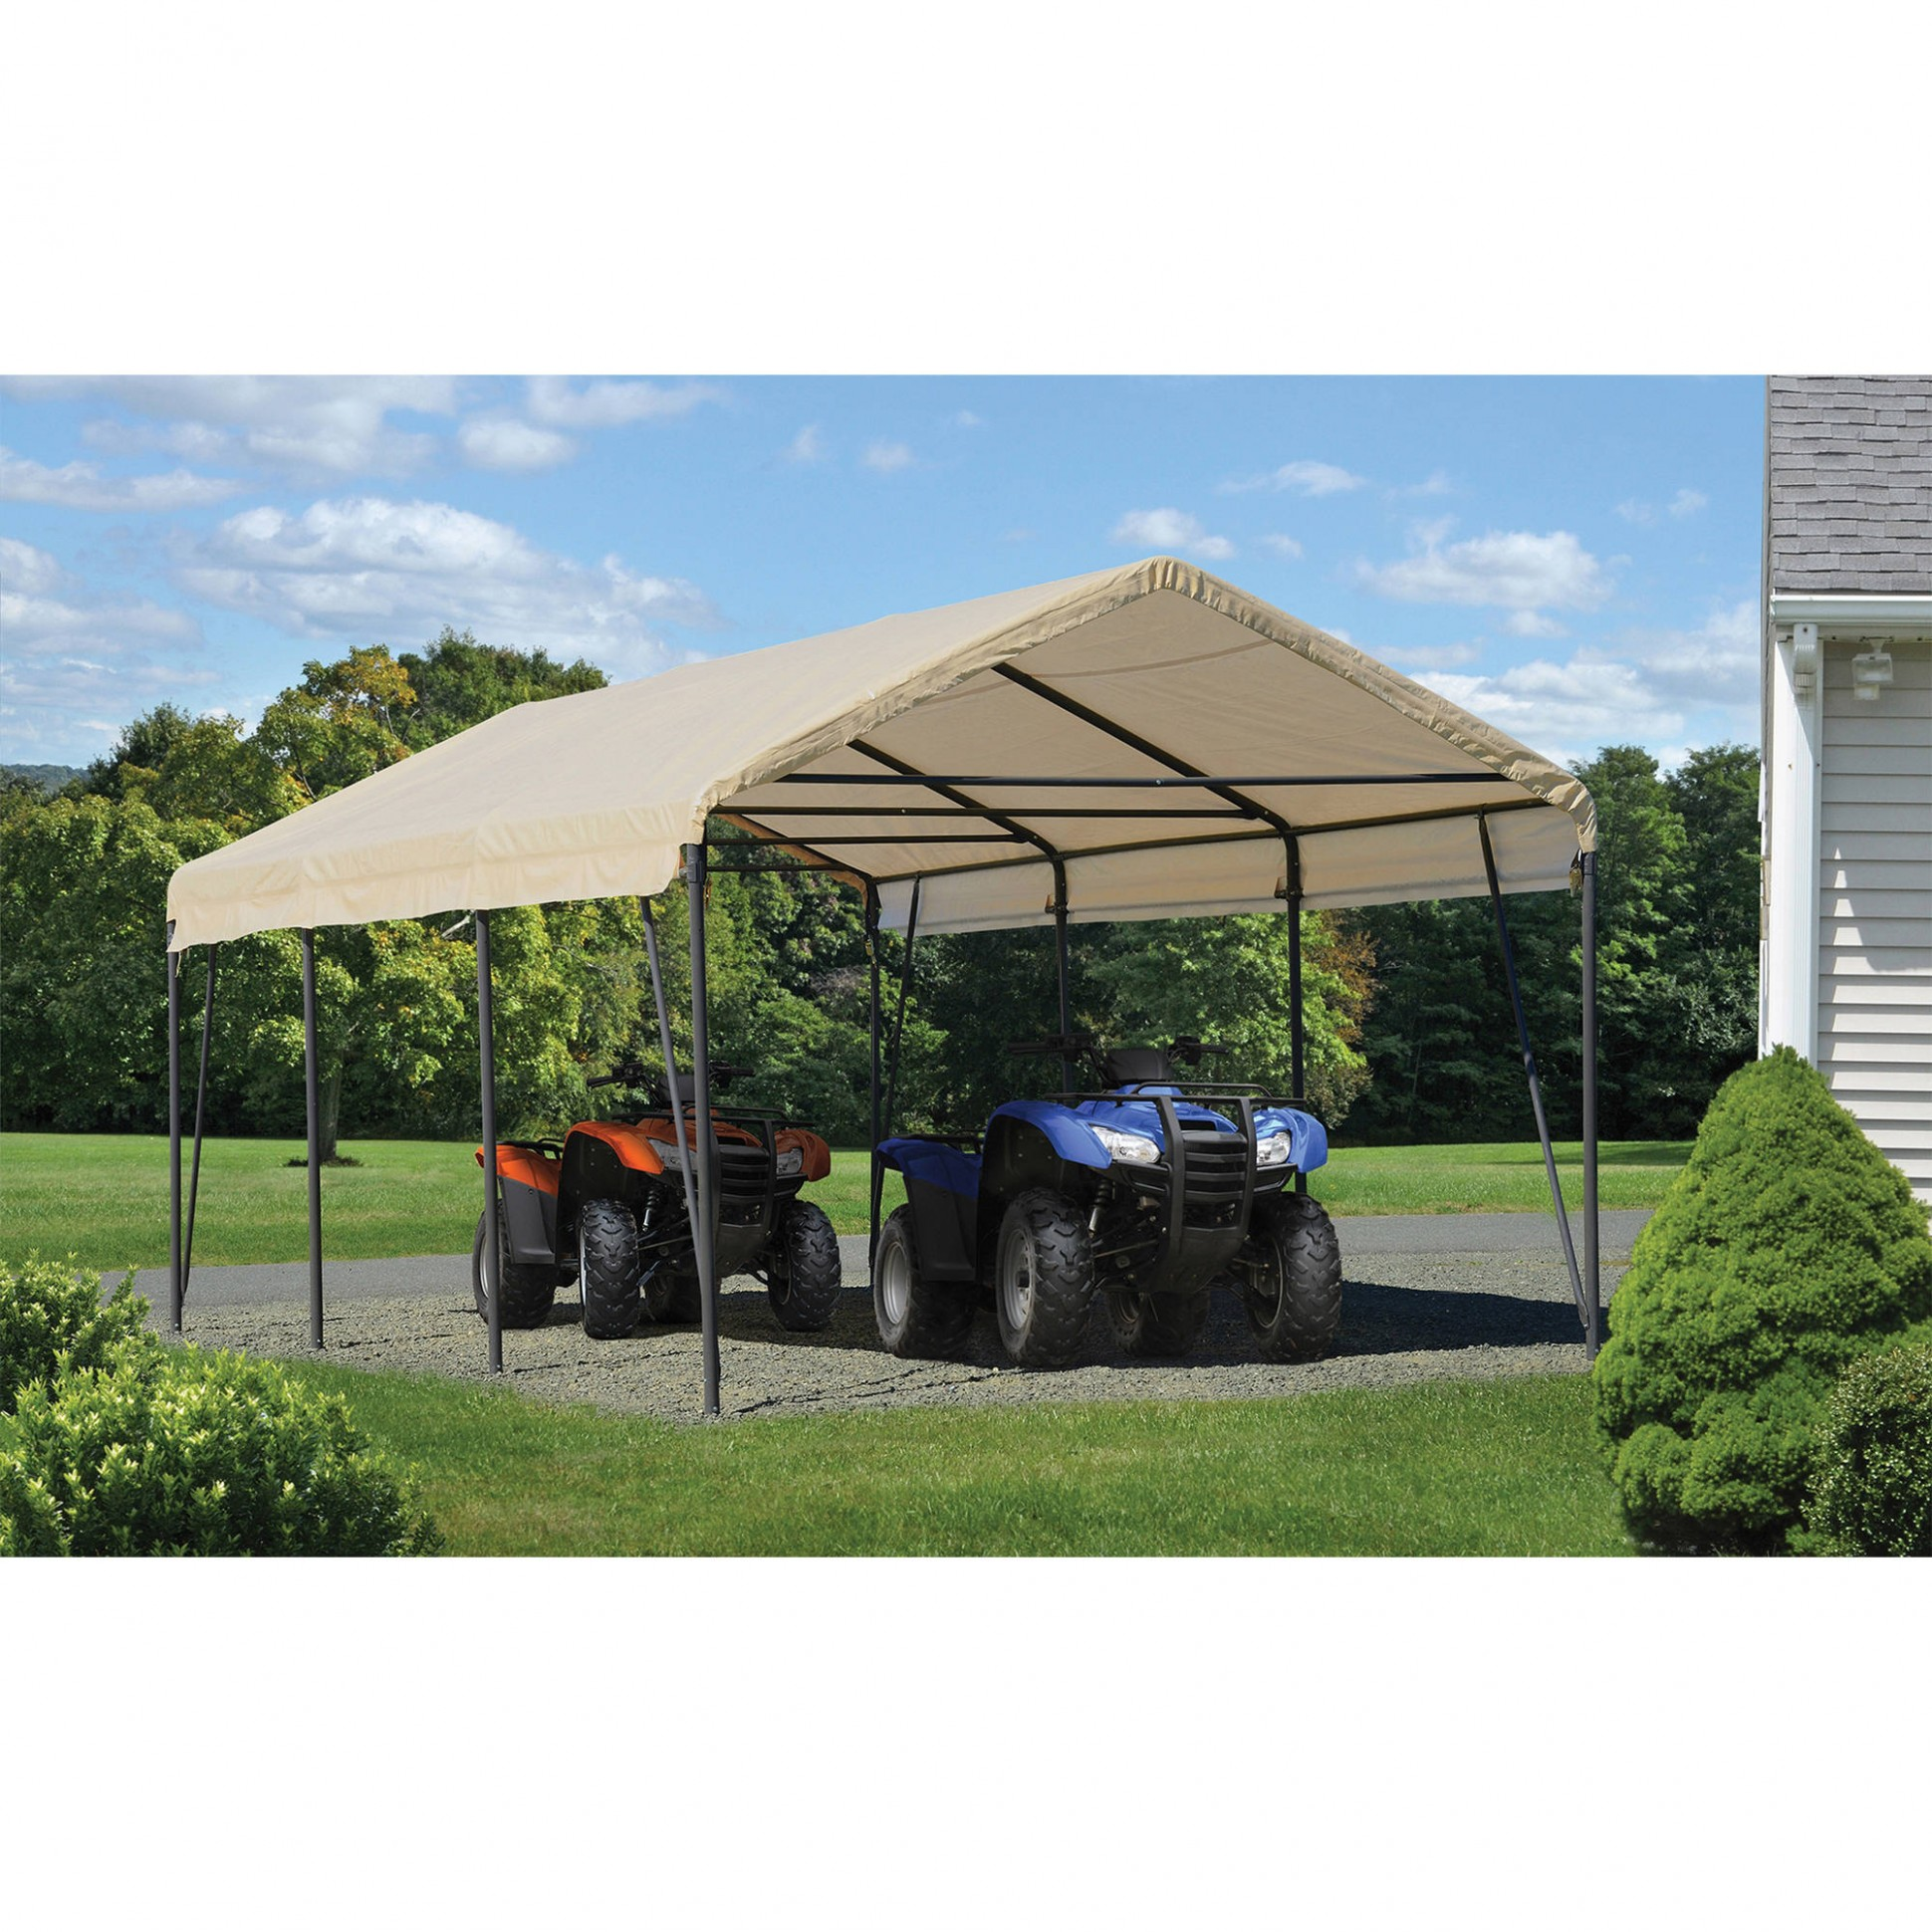 1517815737-best-ideas-of-carports-carport-frame-only-for-sale-10-x-10-metal-carport-frame-only-for-sale.jpg